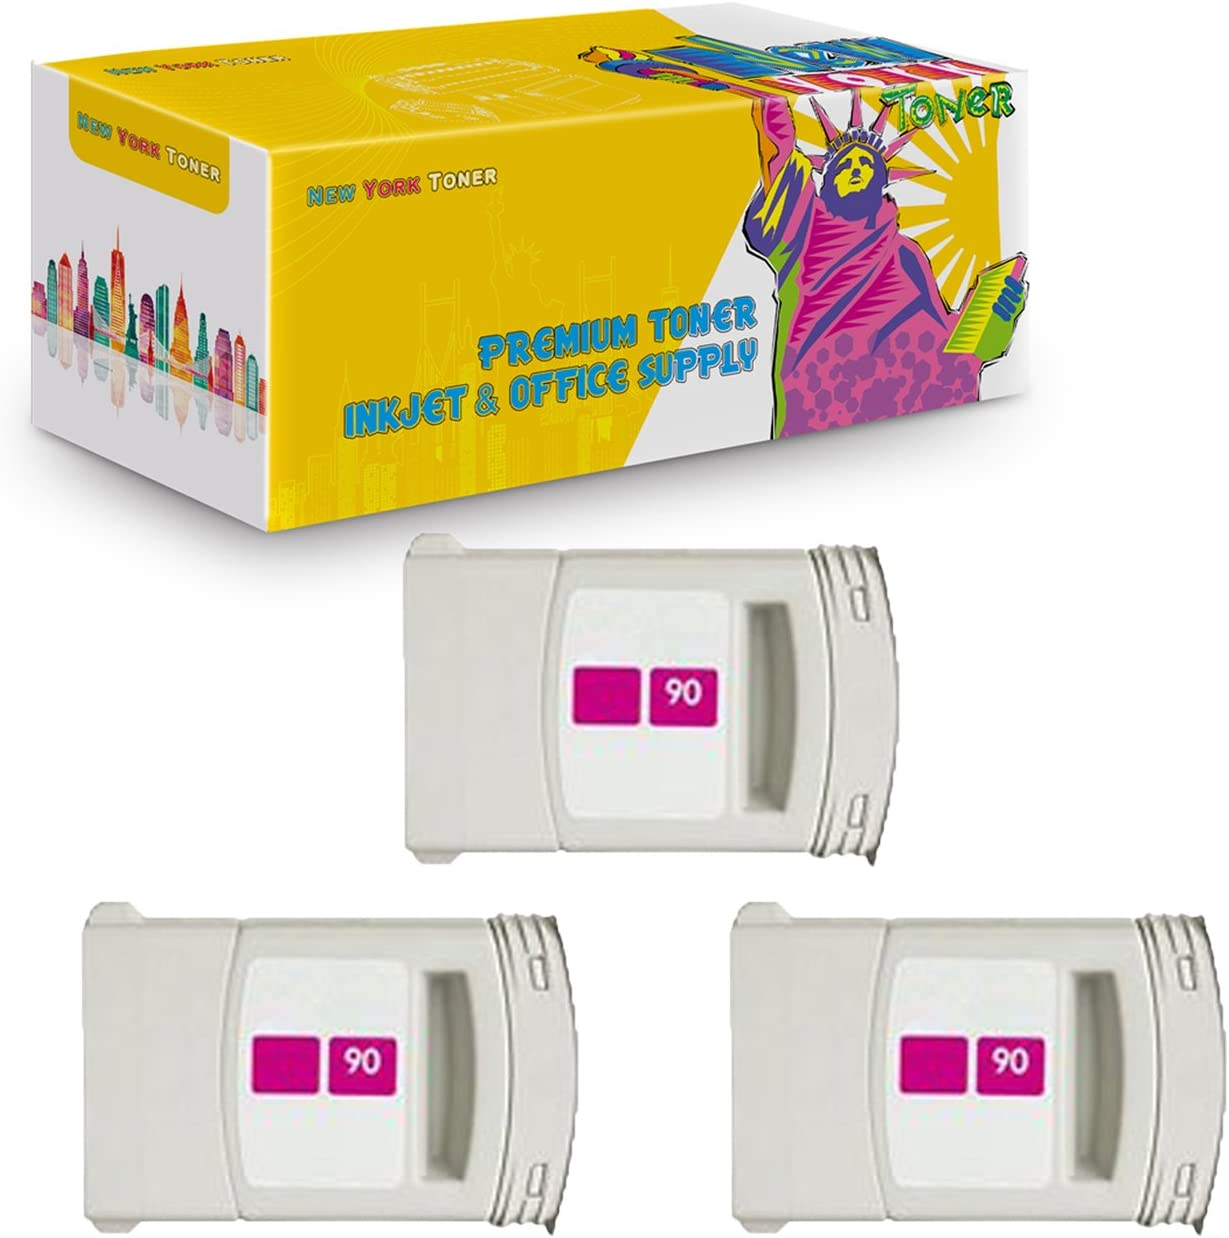 Magenta, 3-Pack NYT Compatible High Yield Inkjet Cartridge Replacement for C5063A #90 for HP DesignJet 4000 4500